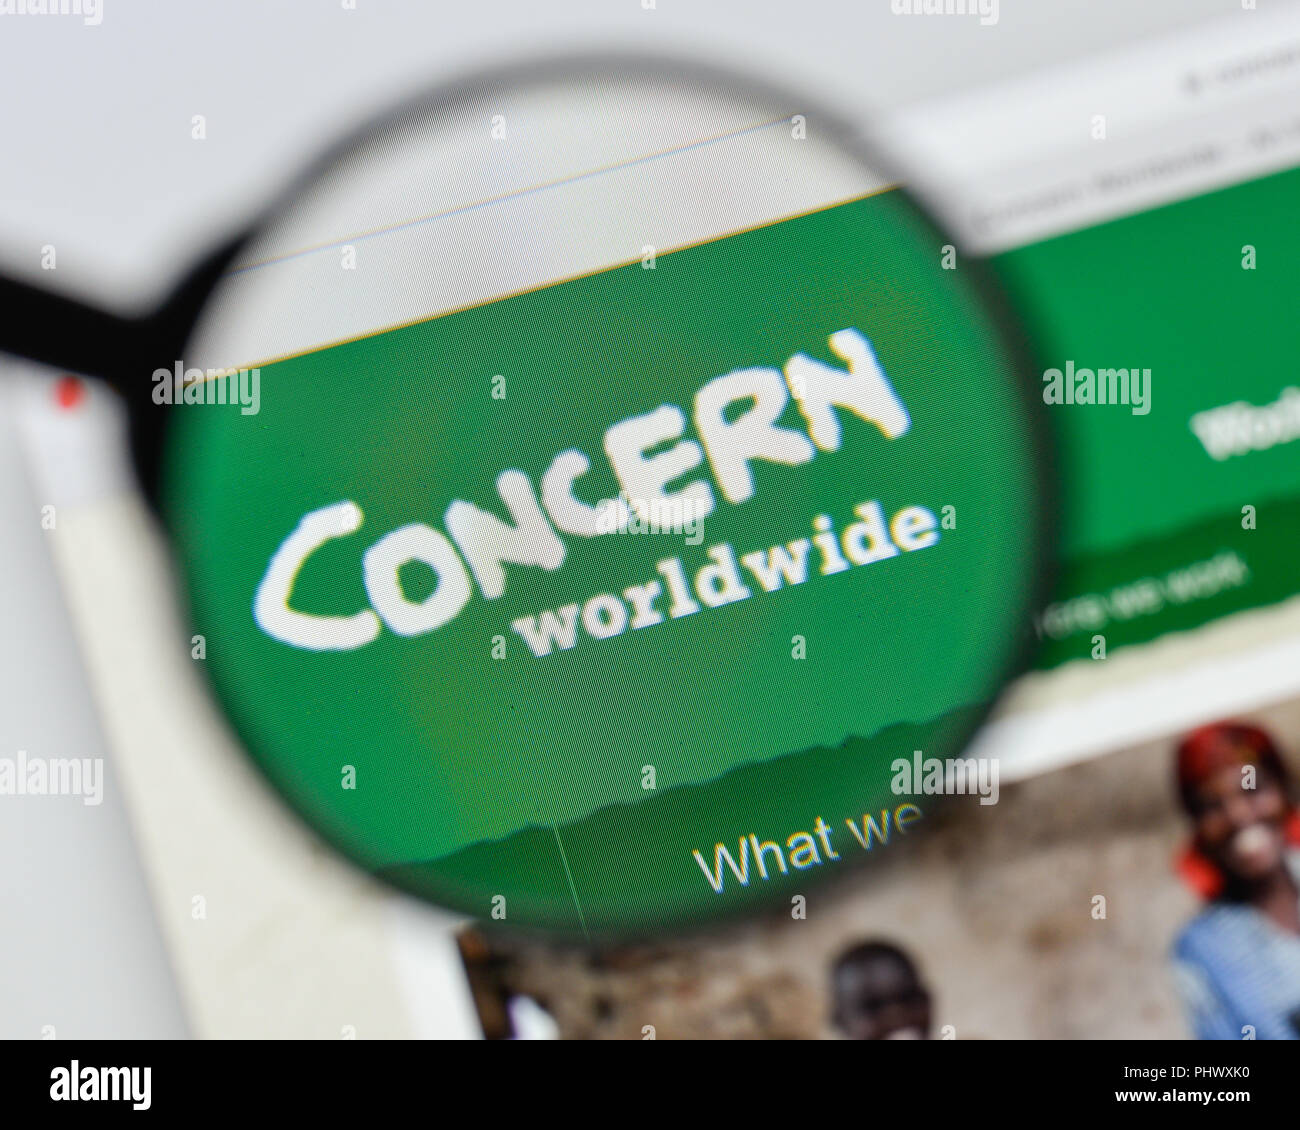 Milan, Italy - August 20, 2018: Concern website homepage. Concern logo visible. - Stock Image